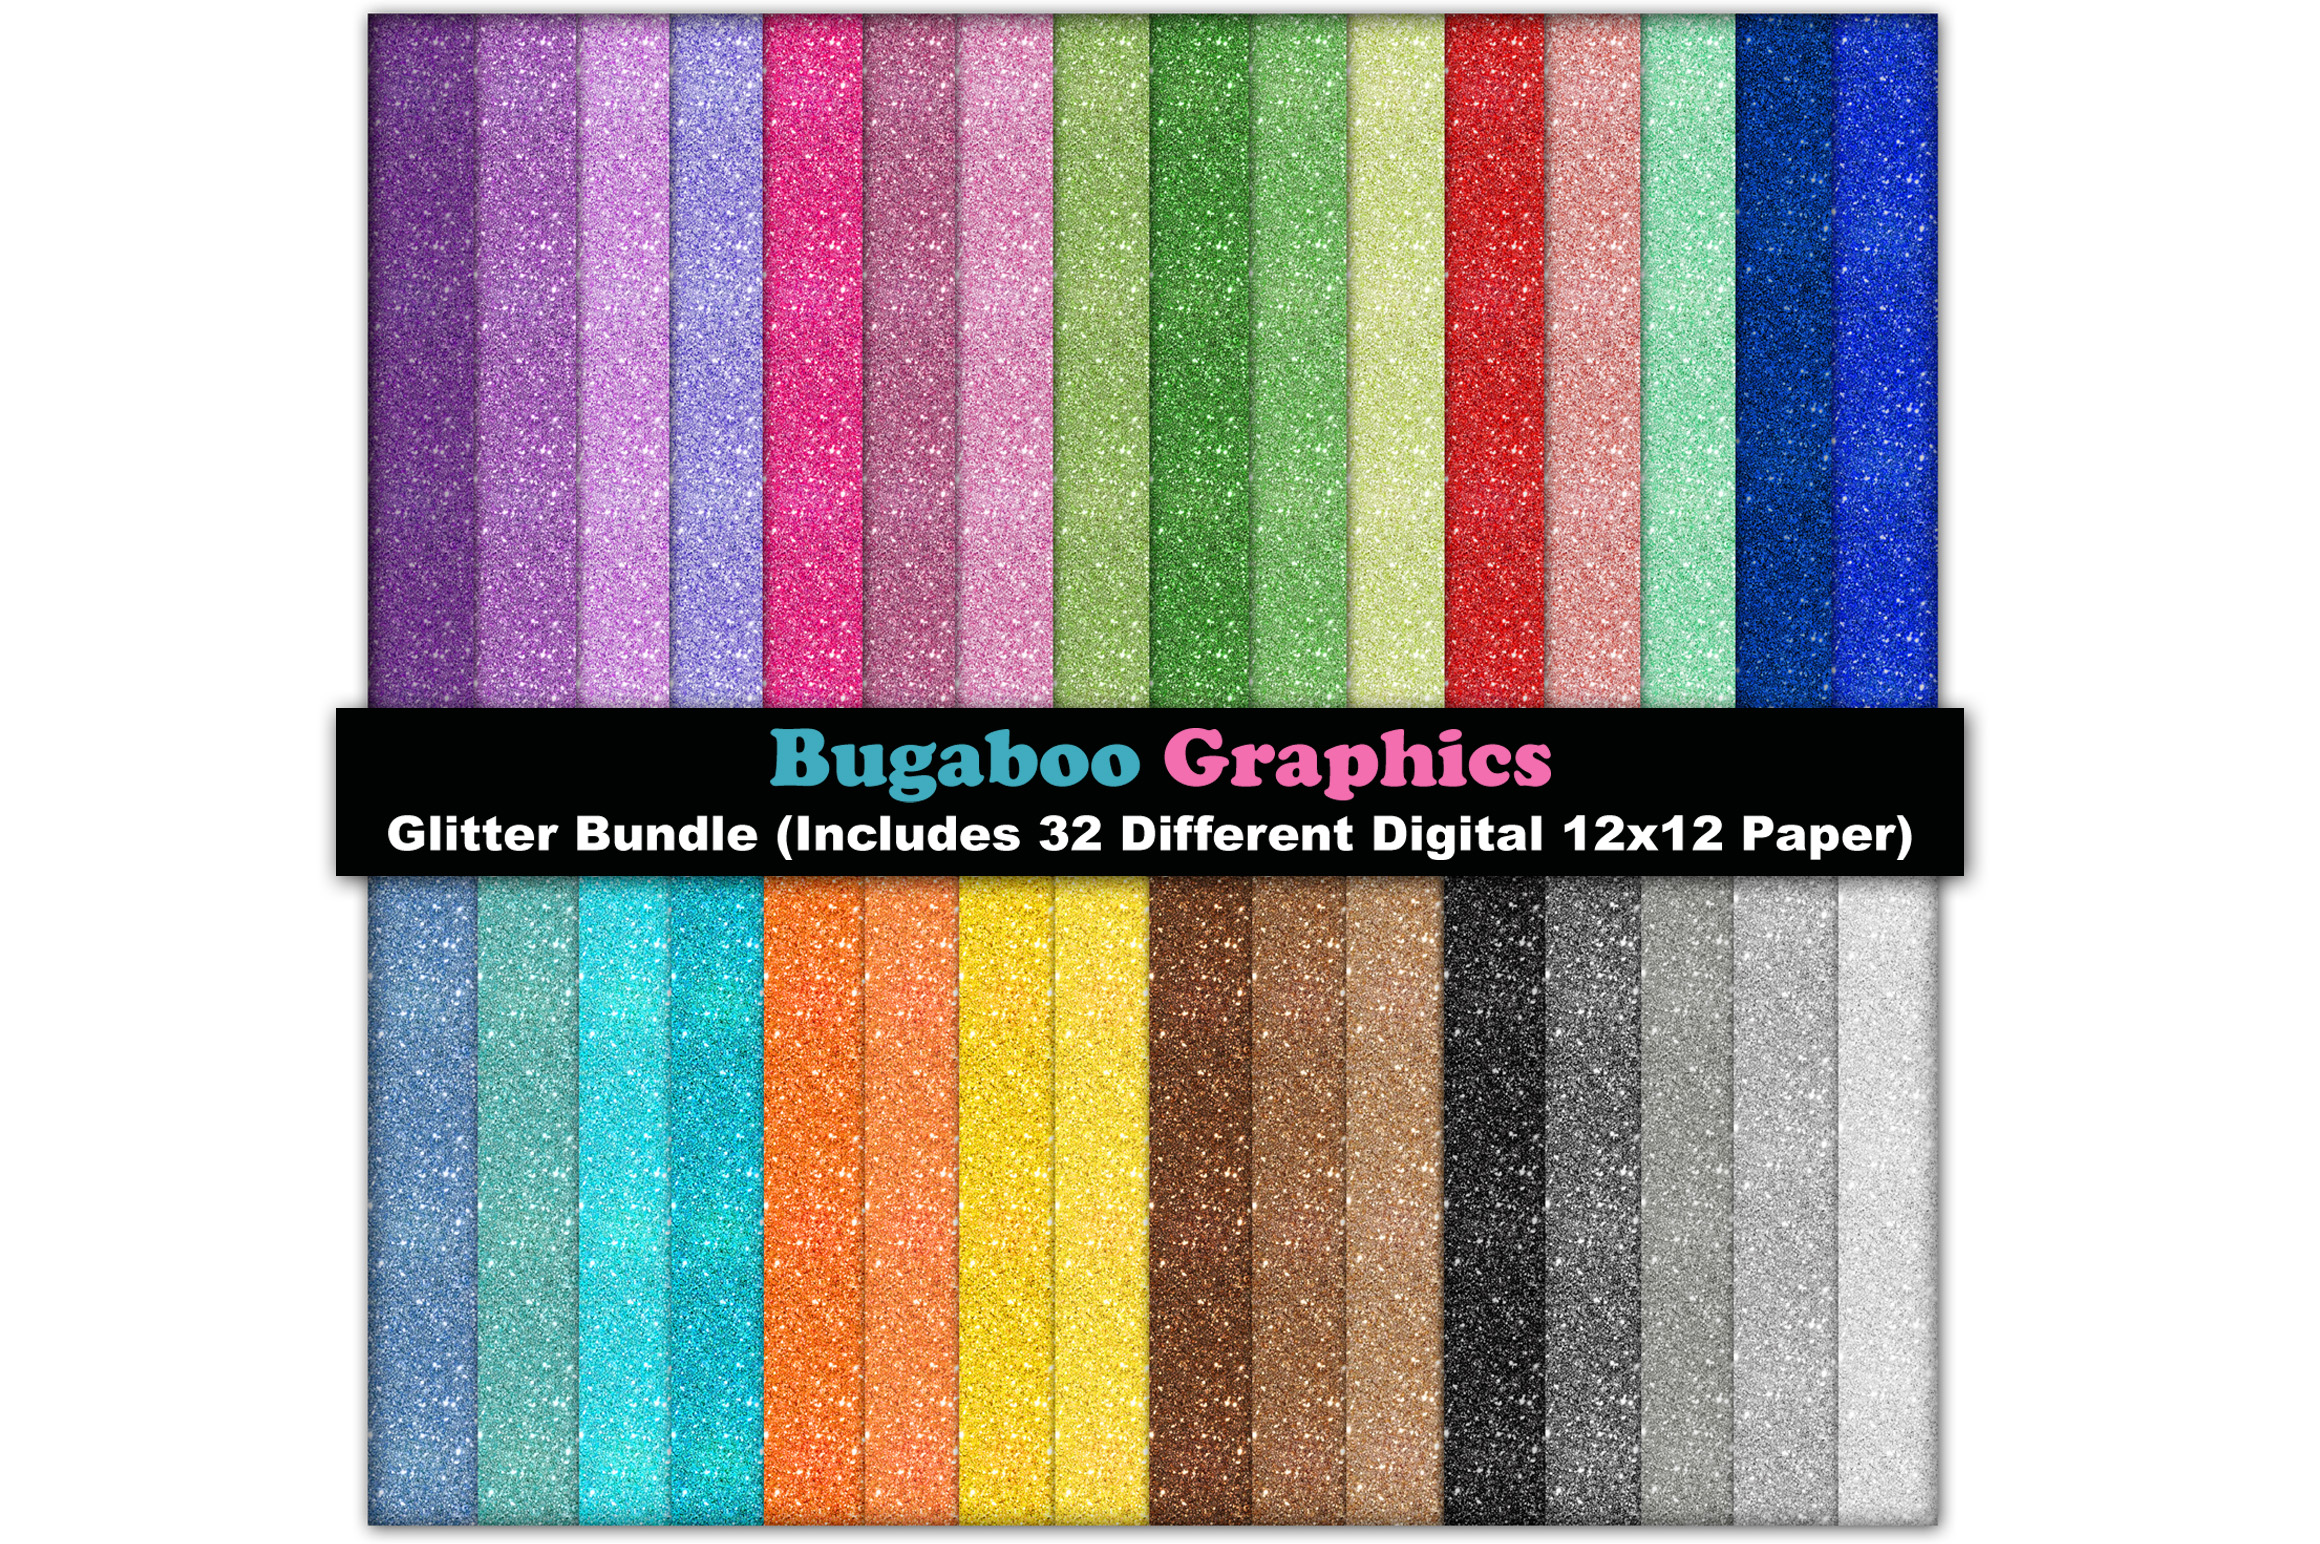 Glitter Digital Scrapbook Paper Bundle - 32 Digital 12x12 example image 1